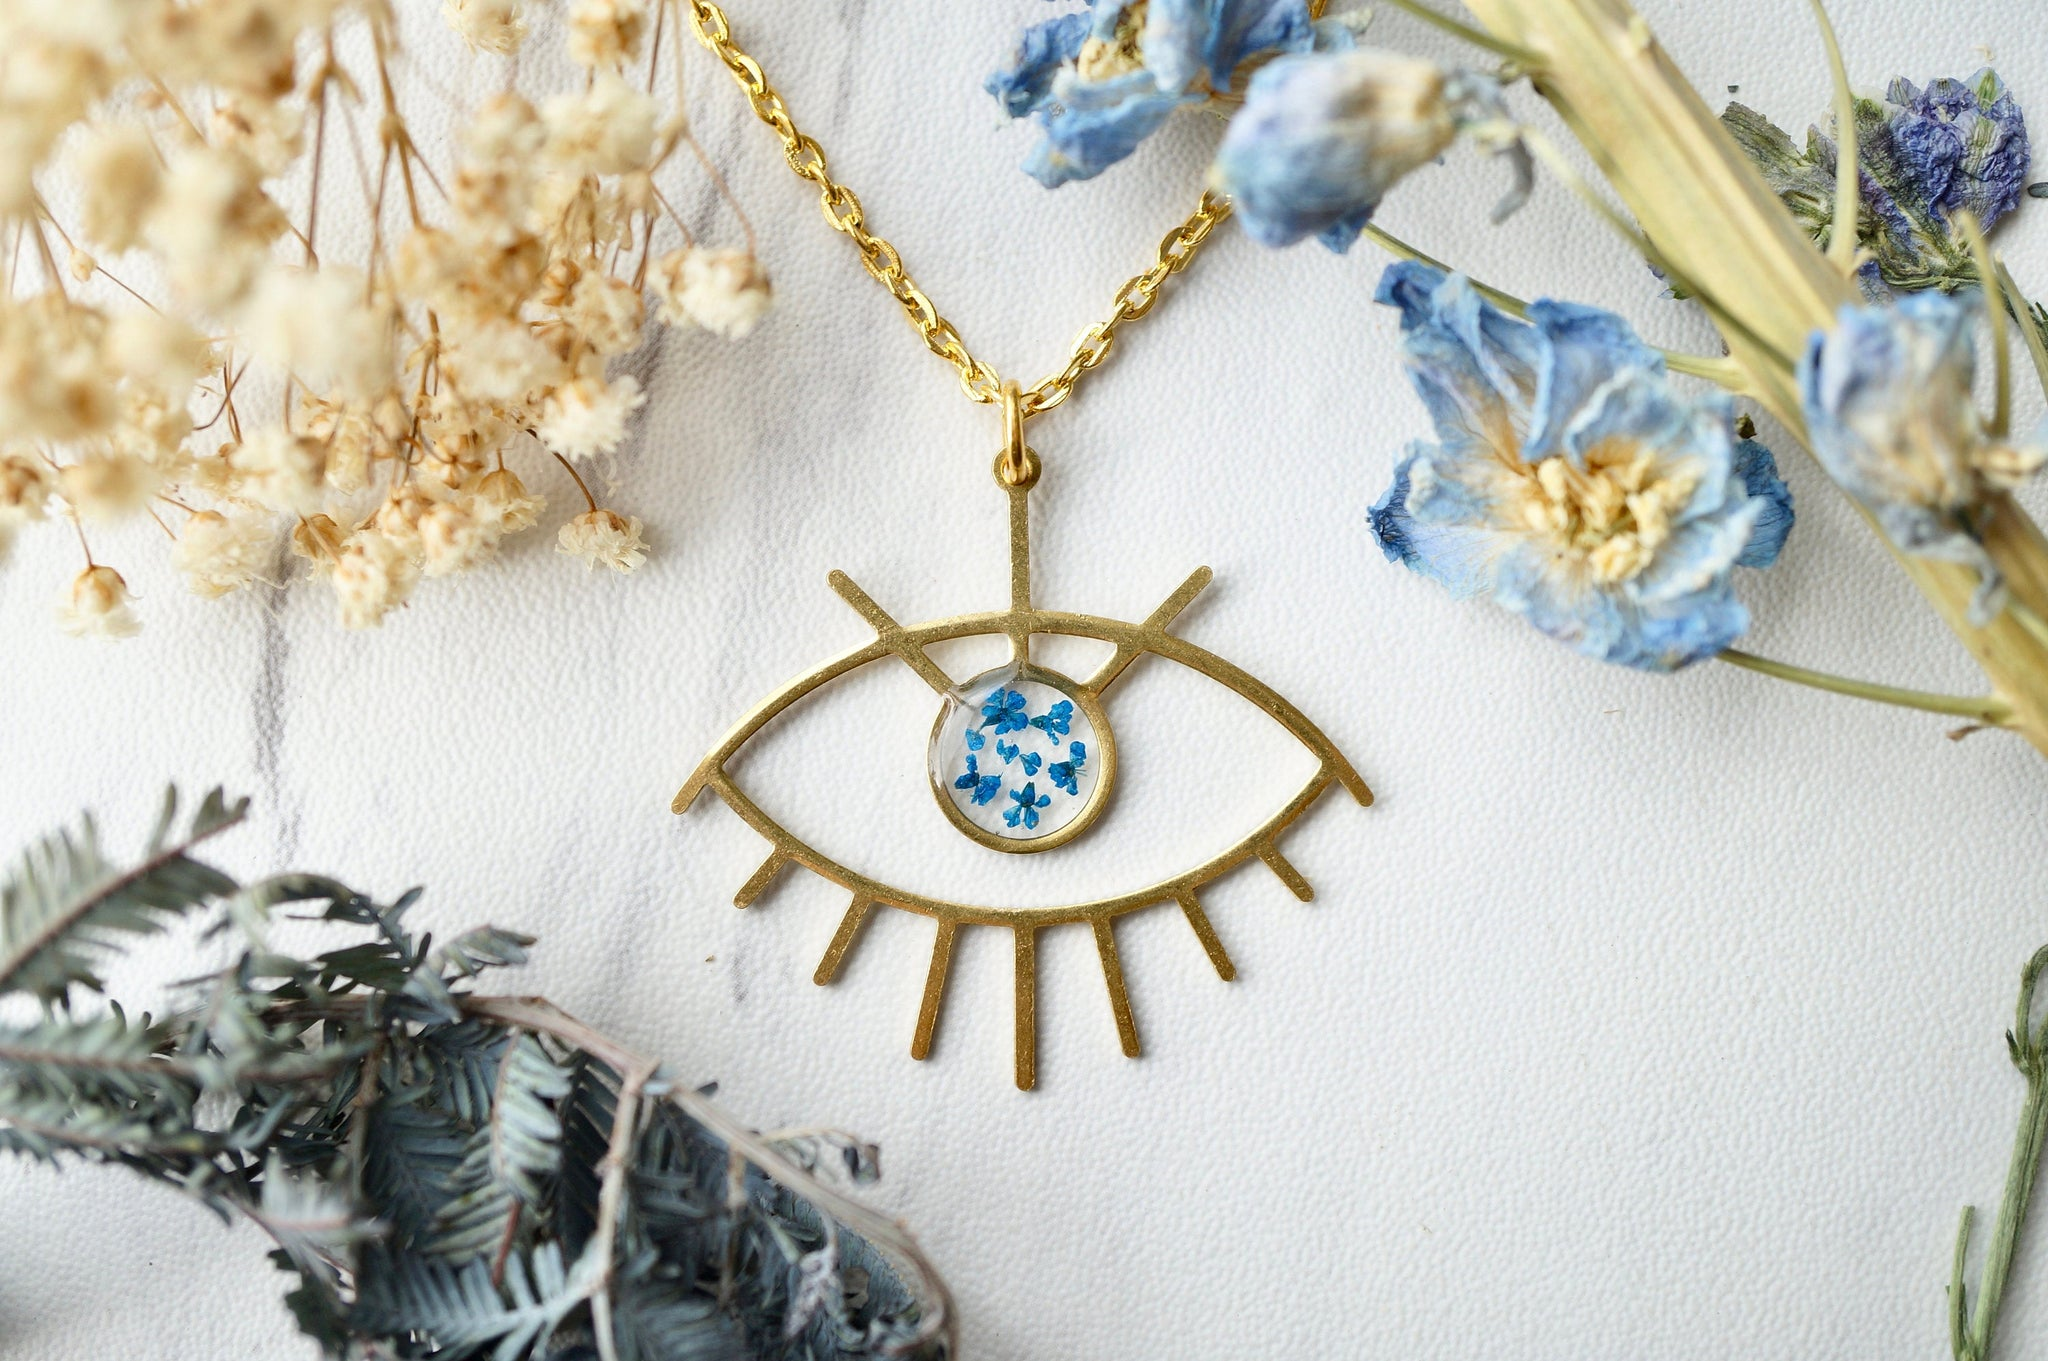 Real Pressed Flowers in Resin, Gold Necklace, Brass Eye in Blue